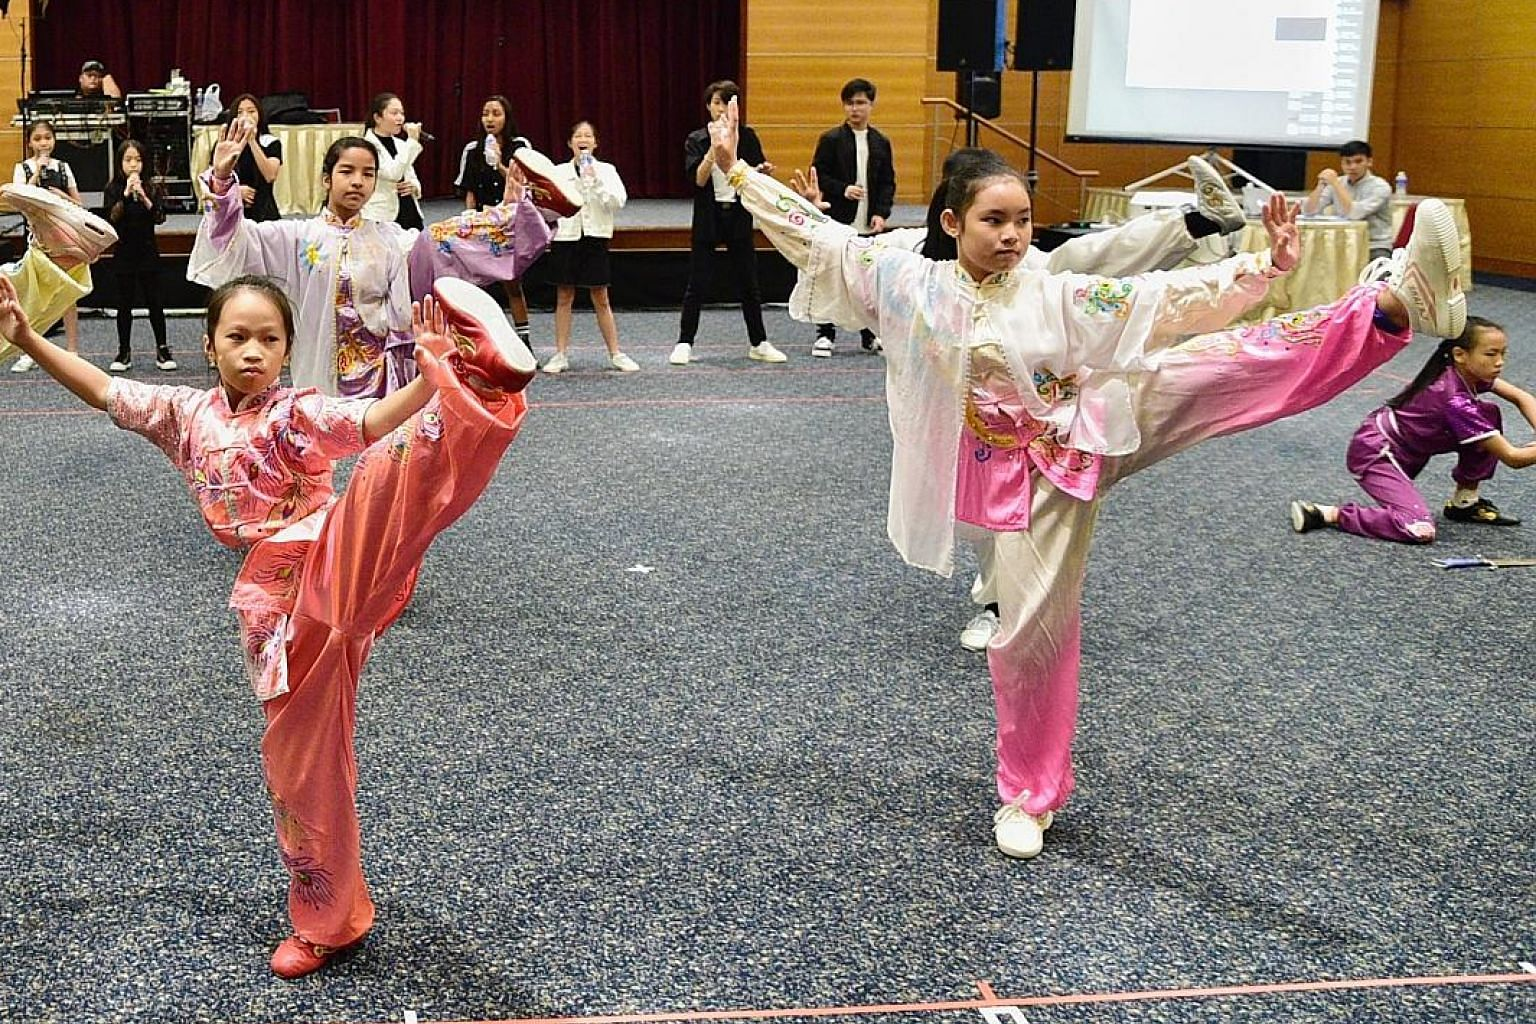 These children practising wushu moves were among over 100 children at Singapore Press Holdings' News Centre last Saturday for a rehearsal of charity concert ChildAid 2019. The Pavilion@Far East Square and Singapore Chinese Cultural Centre are providi